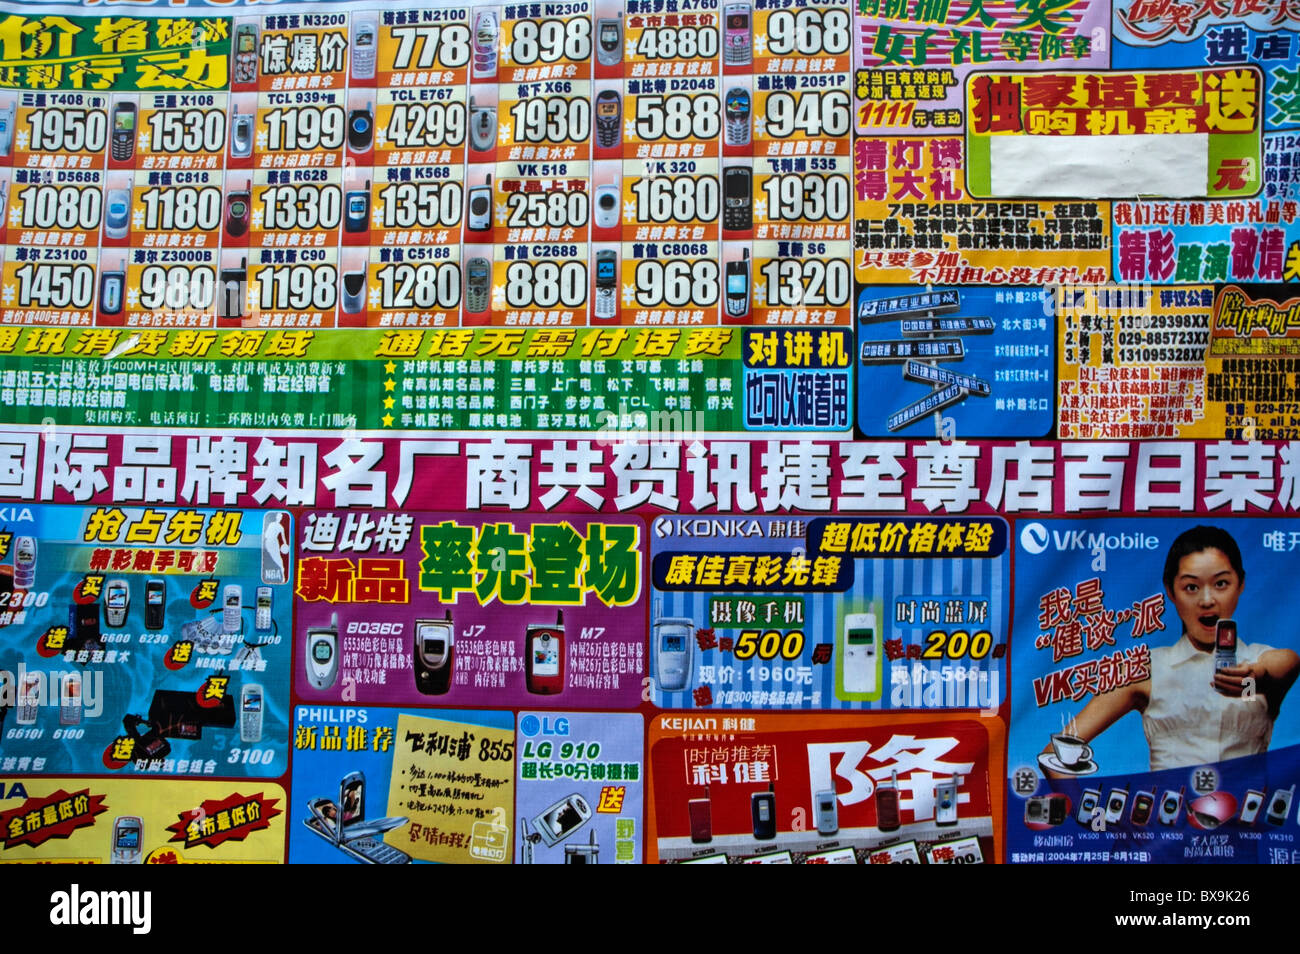 Colourful posters advertising consumer electronics and mobile phones in the street, Xi'an, Shaanxi, China. - Stock Image